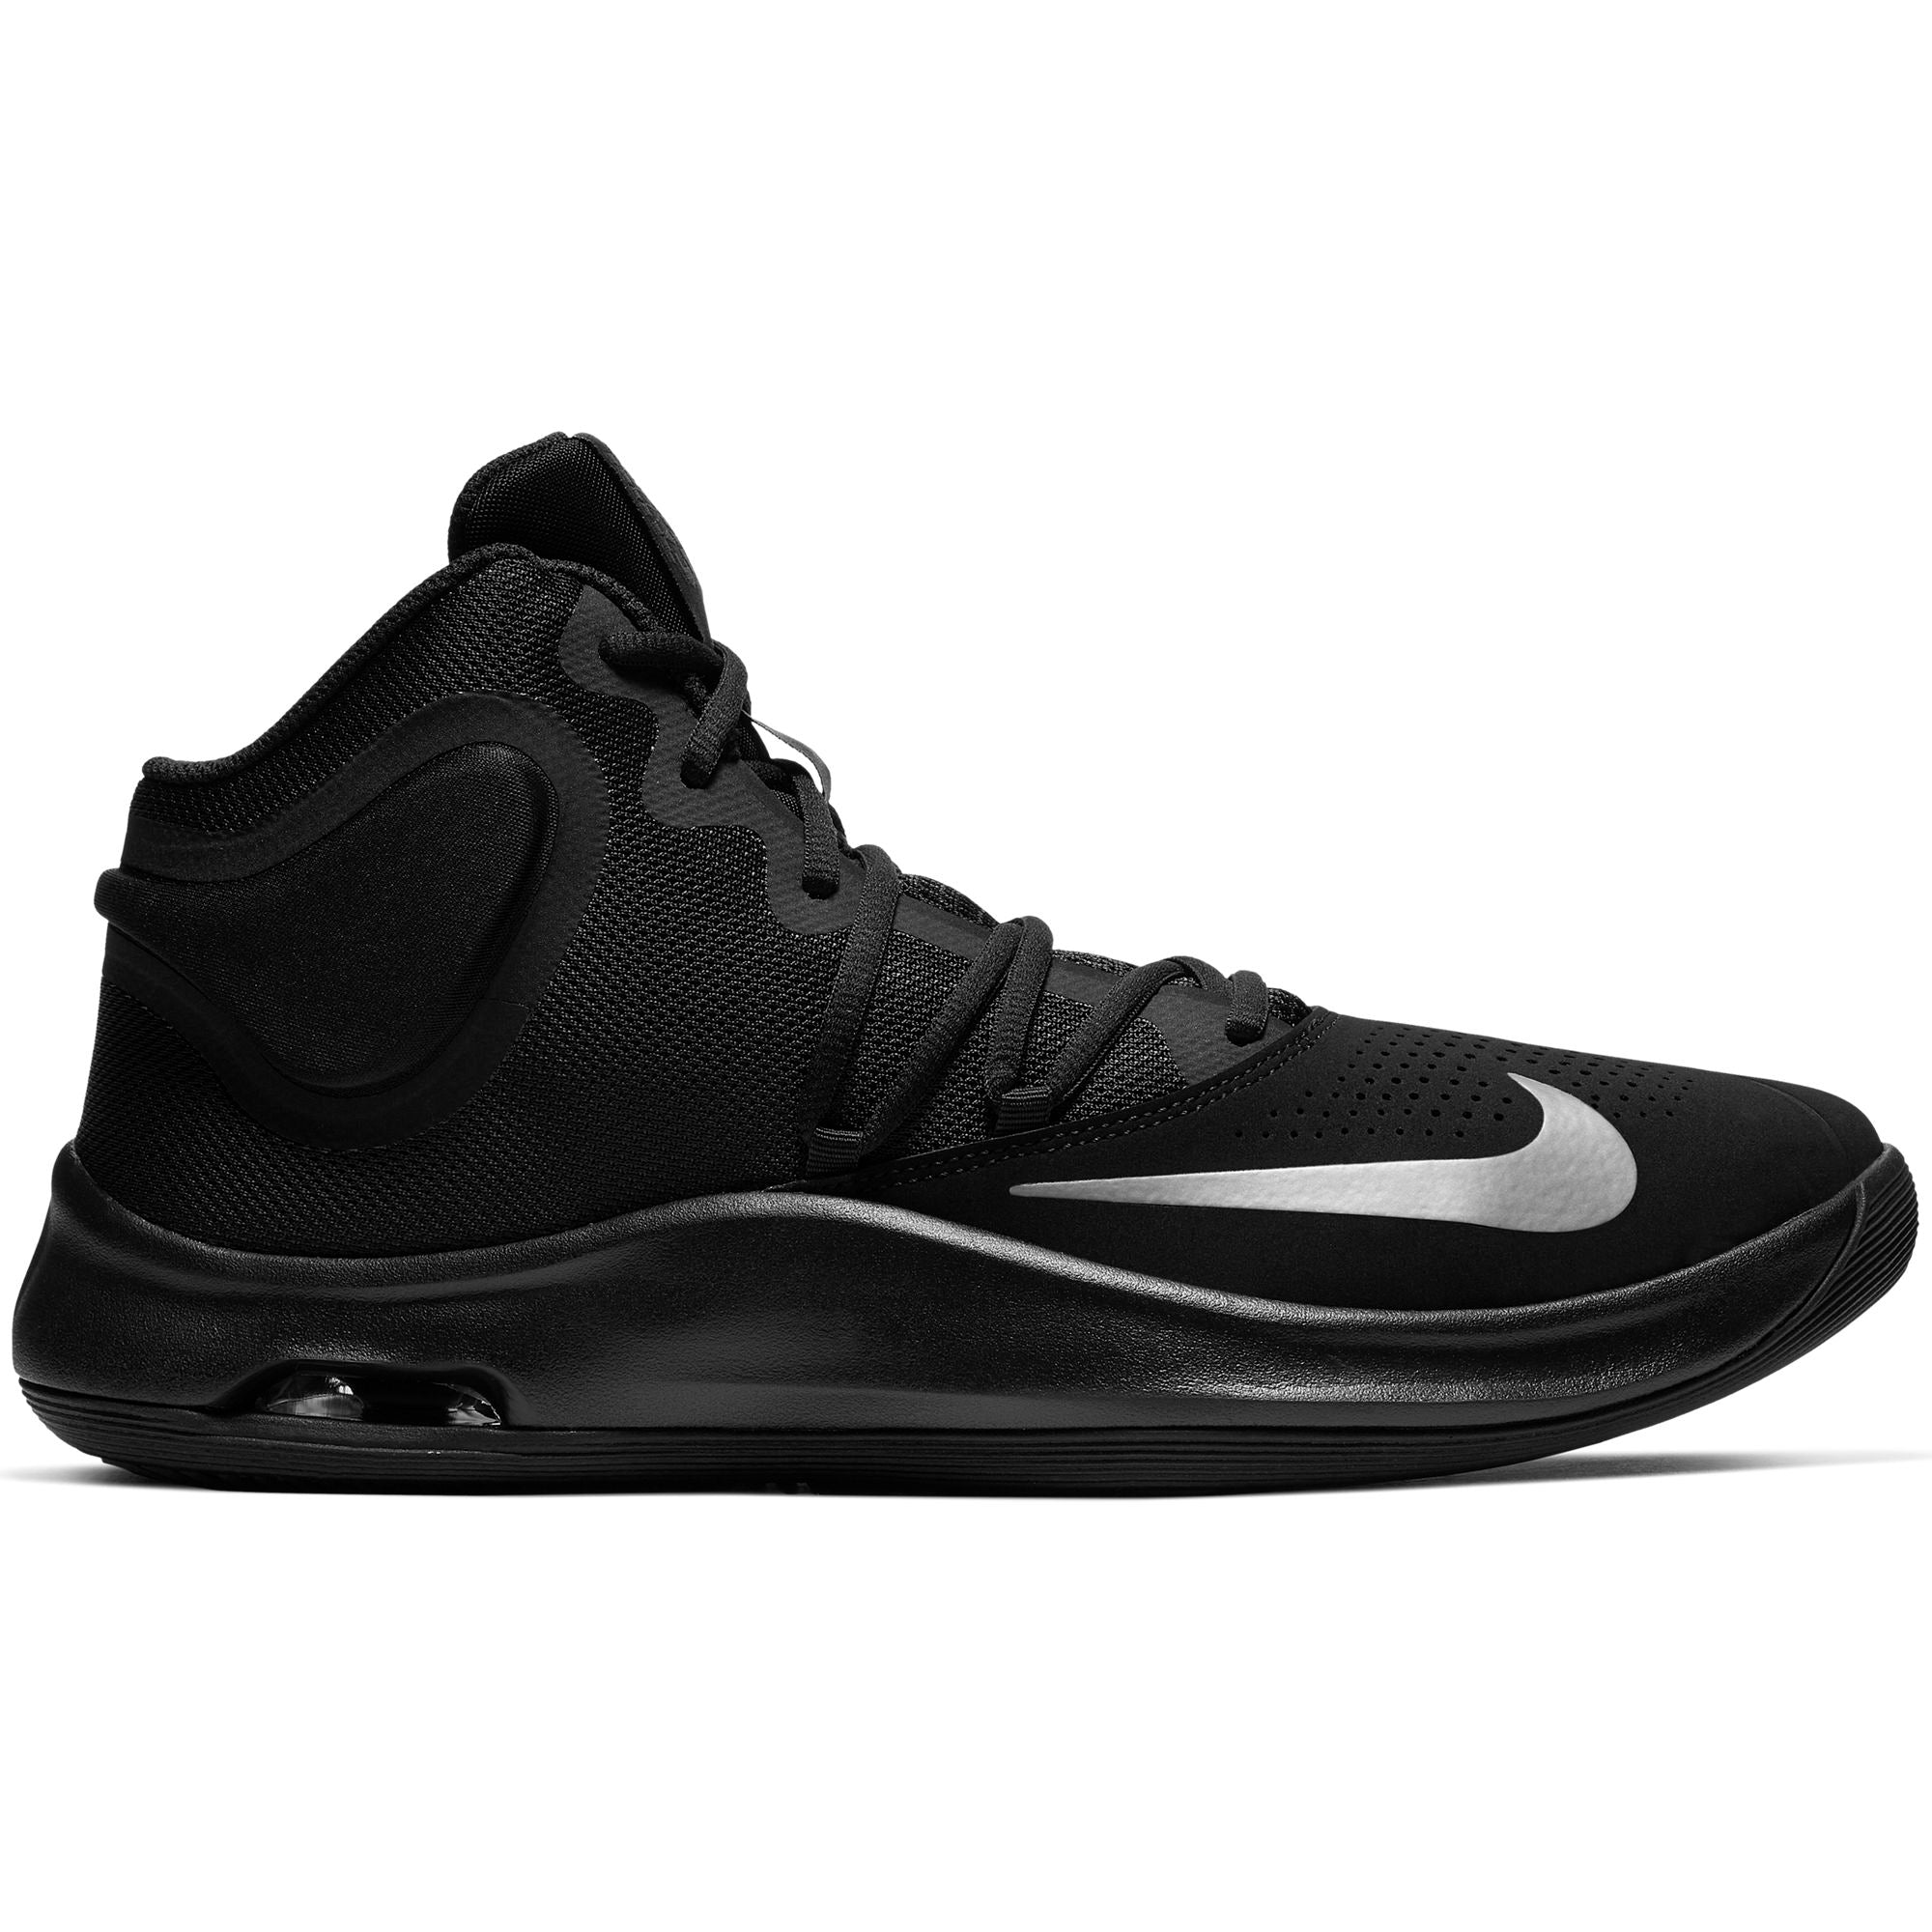 Nike Basketball Air Versitile IV NBK Boot/Shoe - Black/Metallic Cool Grey/Anthracite